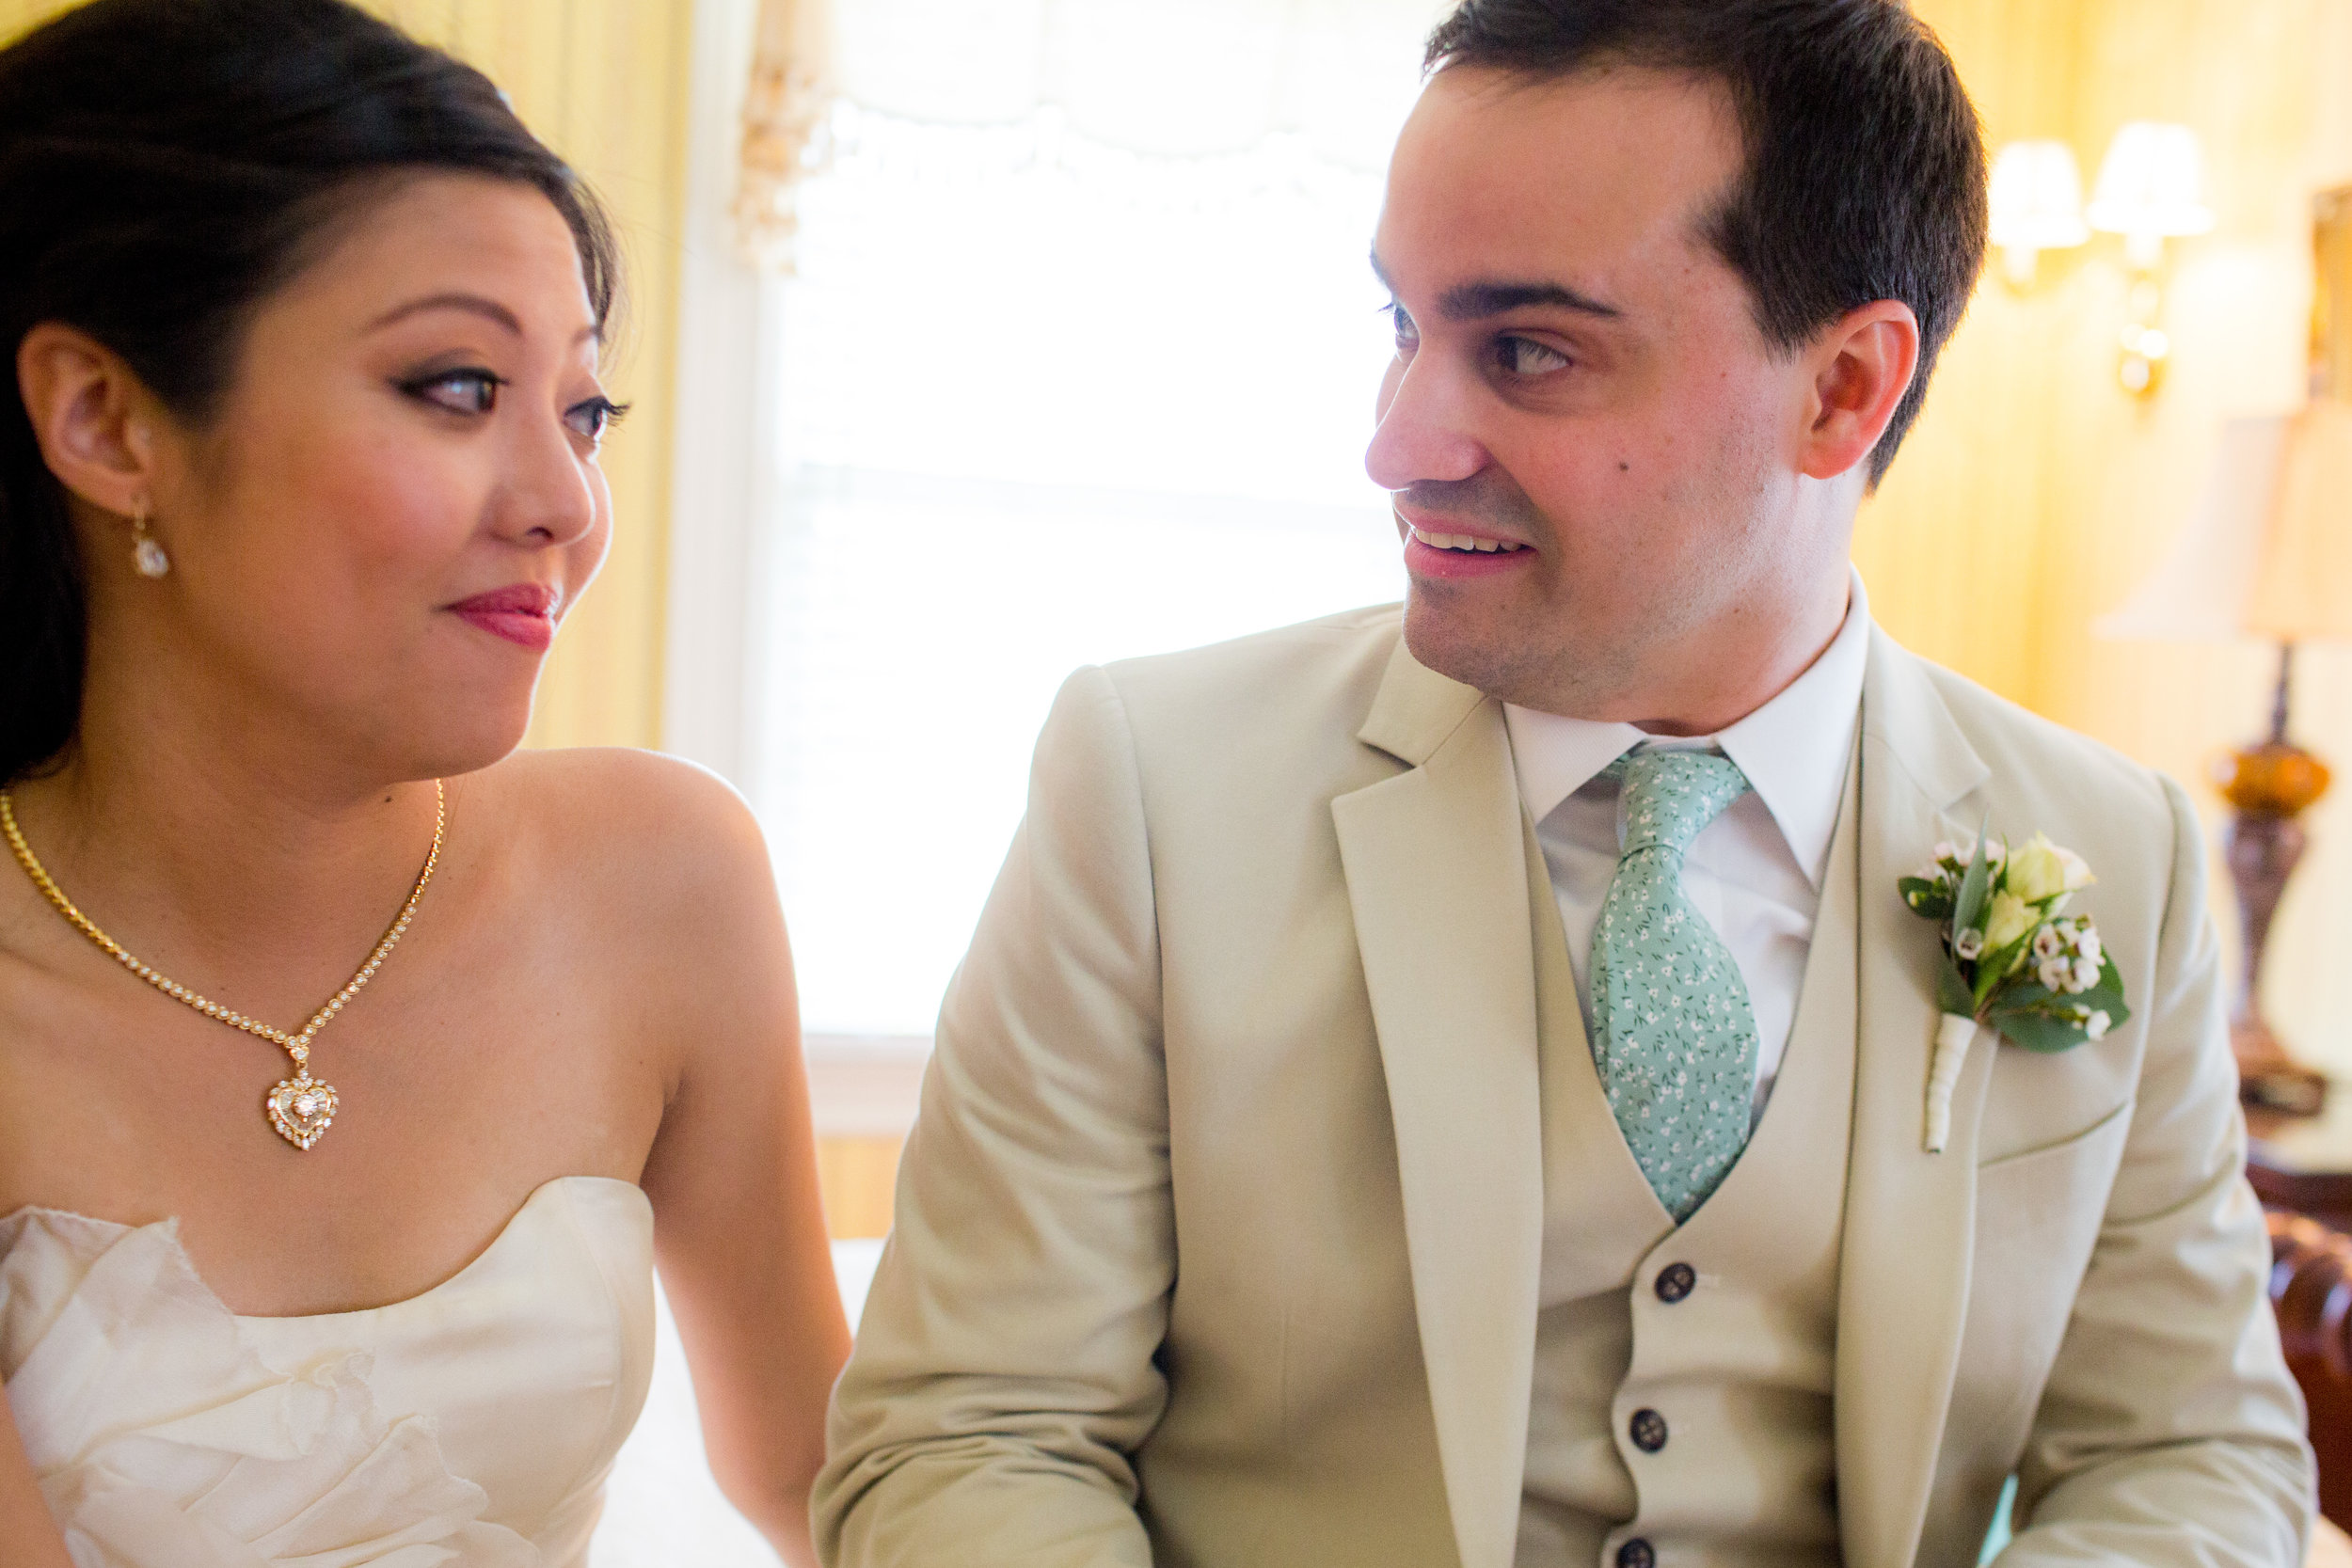 The bride gave a notebook to the groom